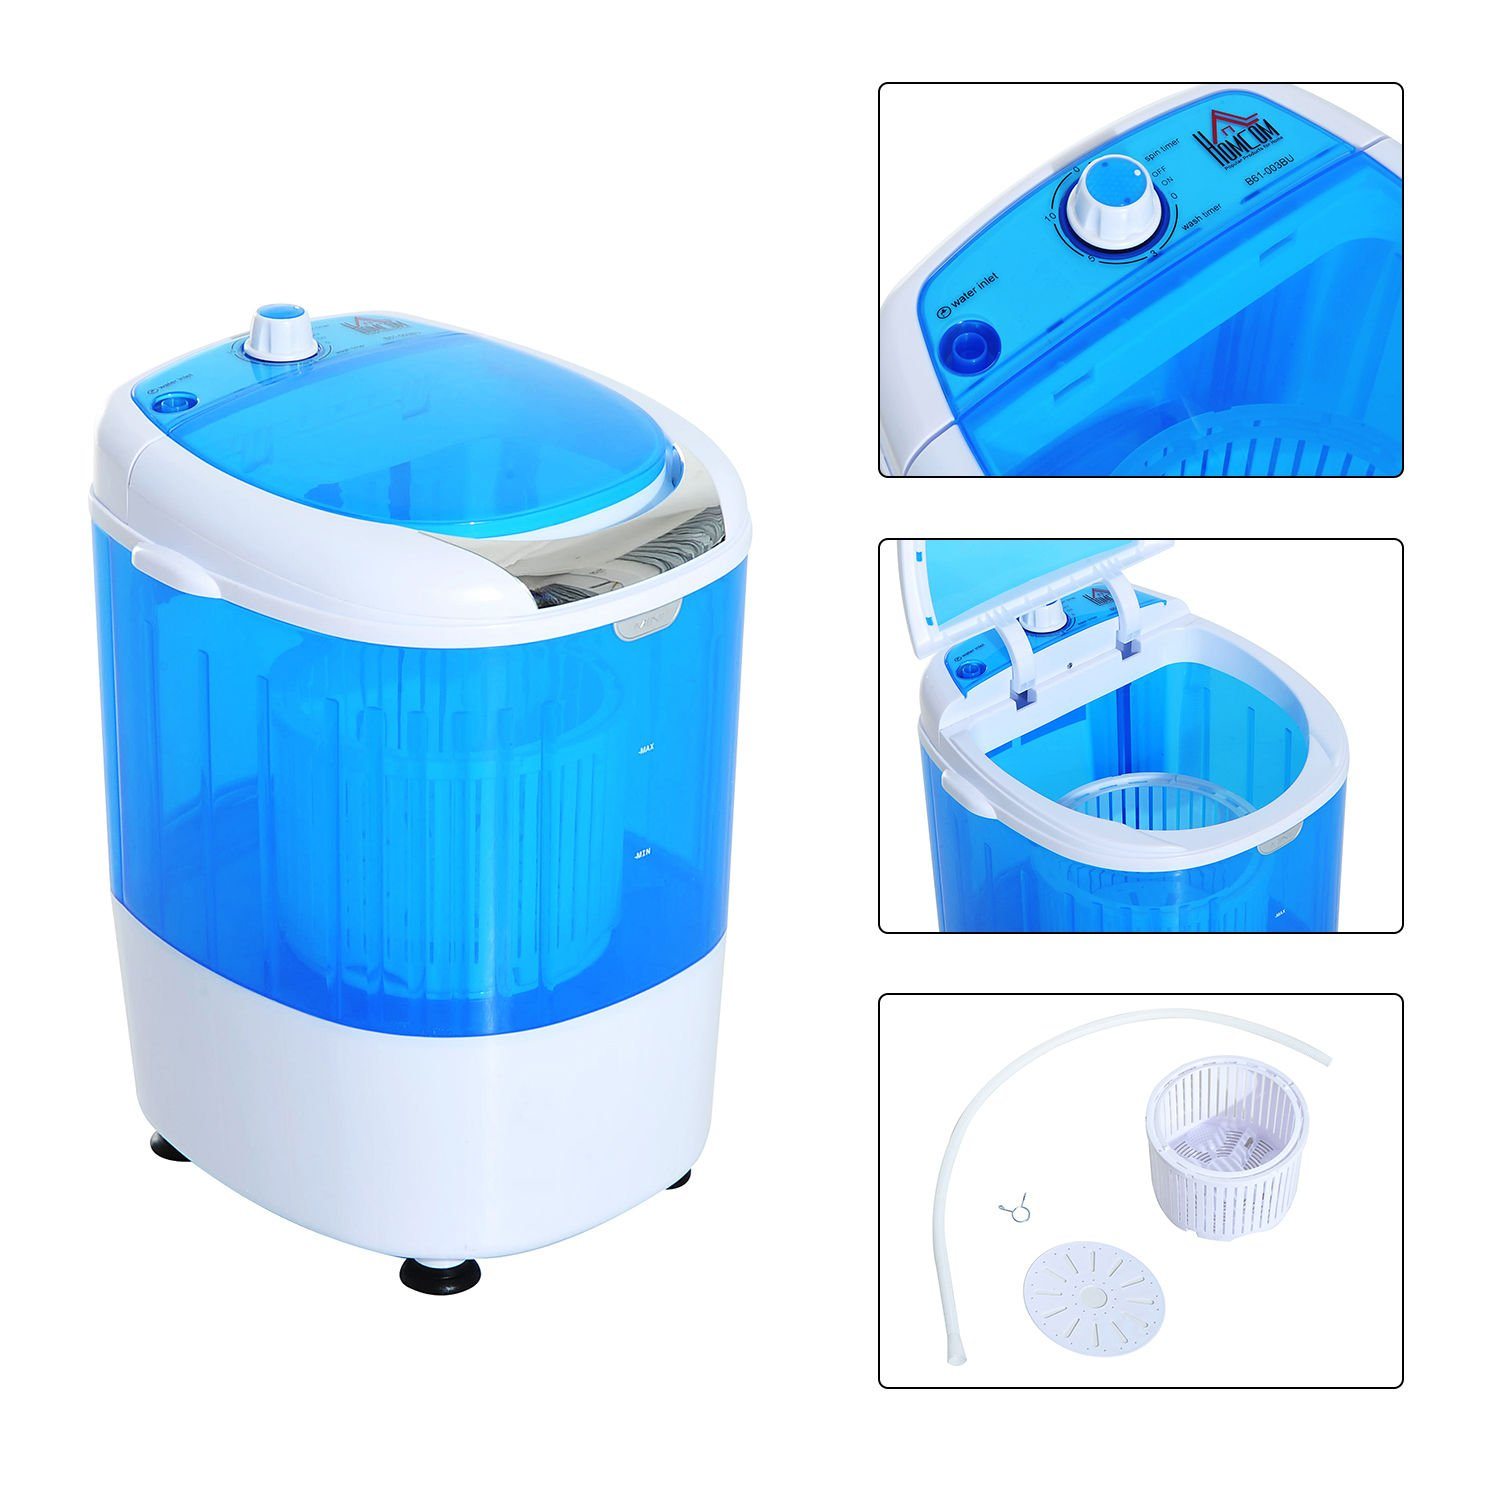 HOMCOM Electric Small Compact Portable Clothes Washer, Washing Machine - Top Load Wash and Spin Dry, for Dorms, College Rooms, RV's - Blue and White RV's - Blue and White